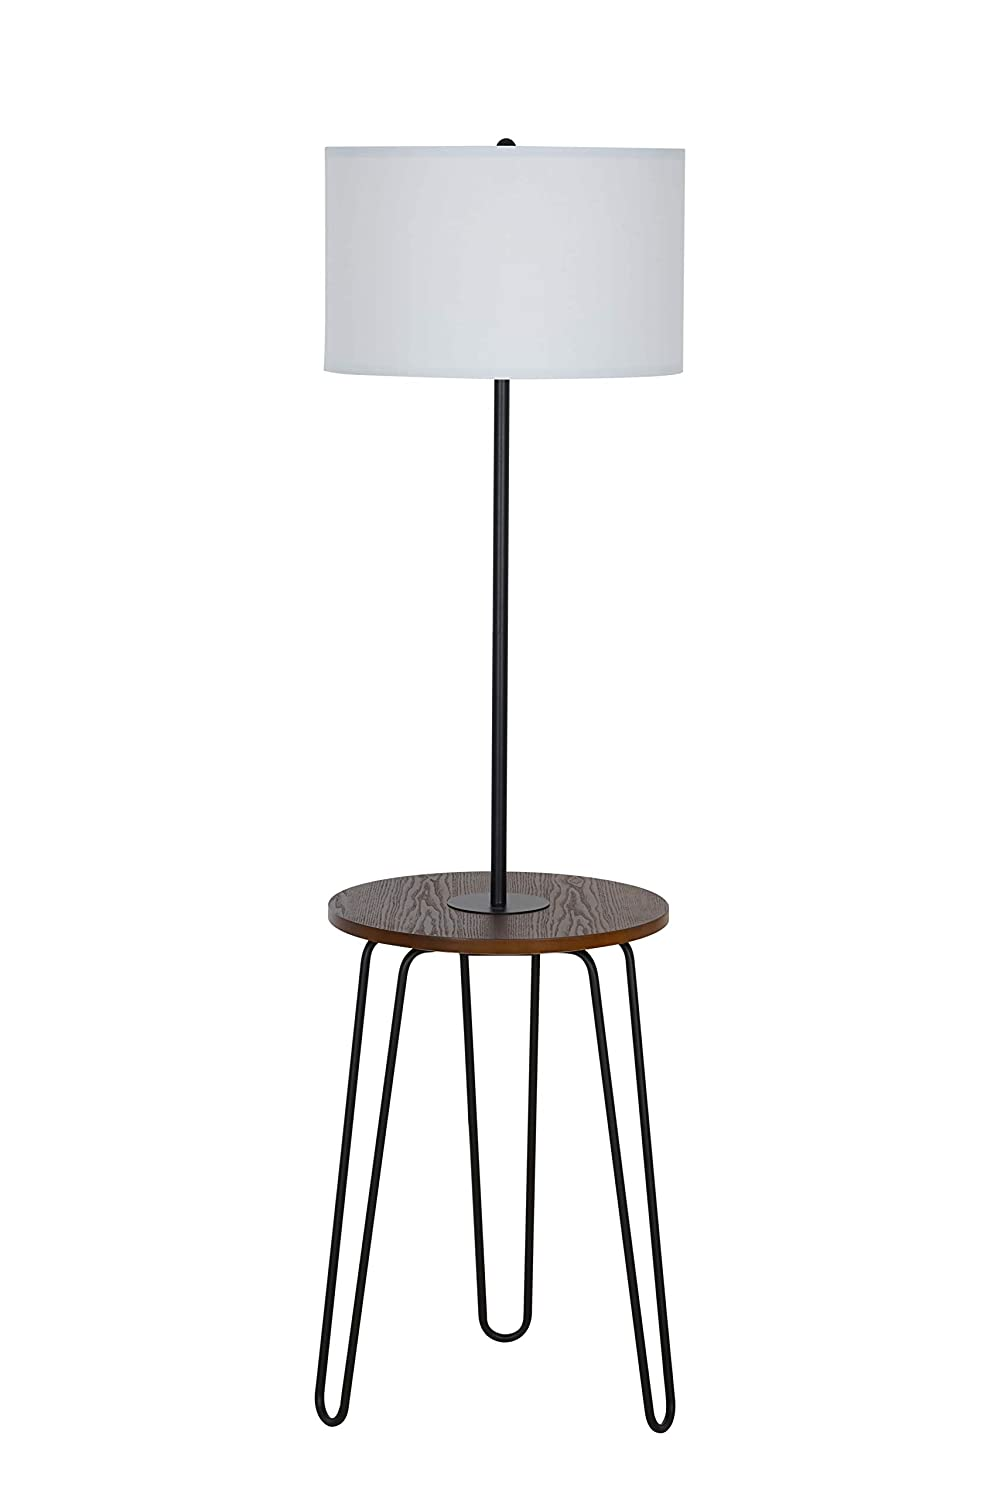 Catalina Lighting 21902-000 Mid-Century Modern Floor Lamp with Table and USB Port, 59 , Black